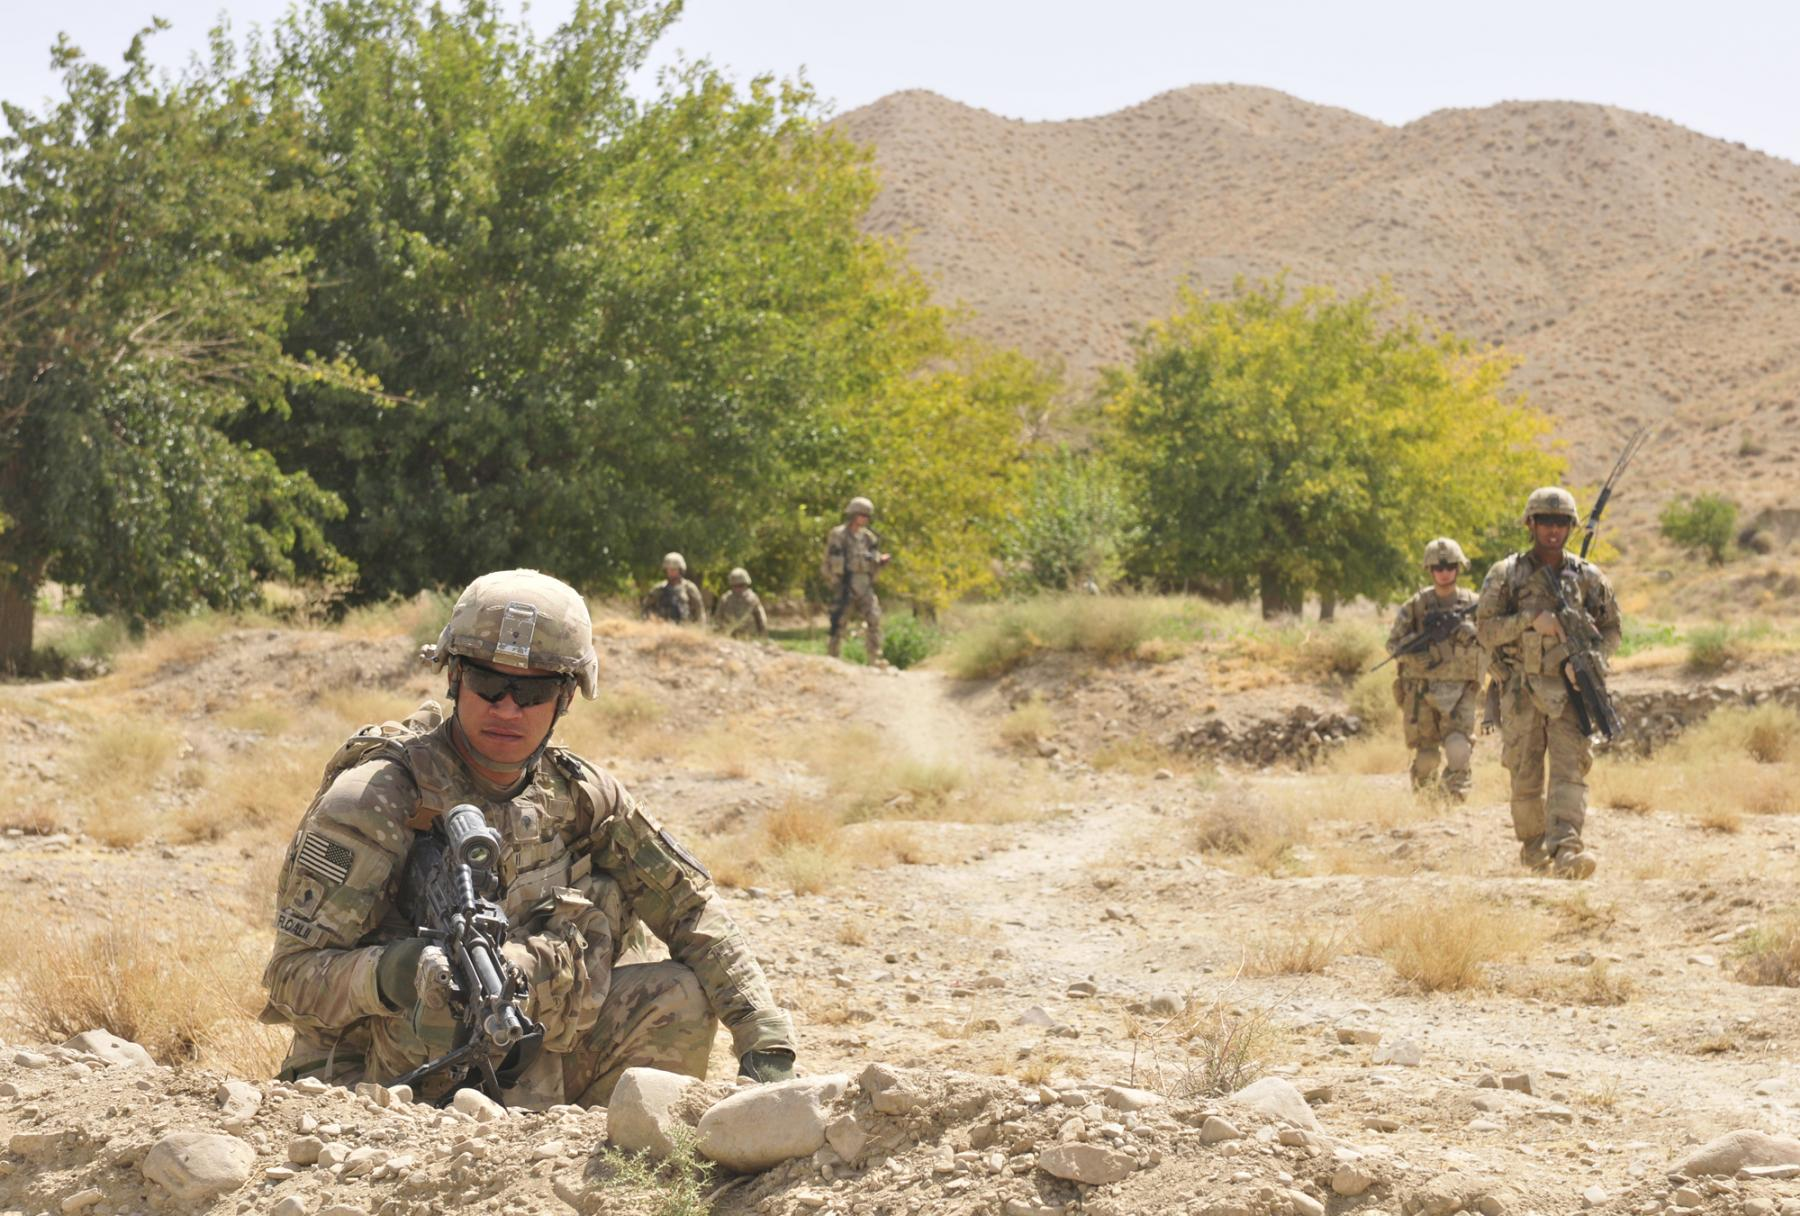 An infantryman provides security for members of his platoon.